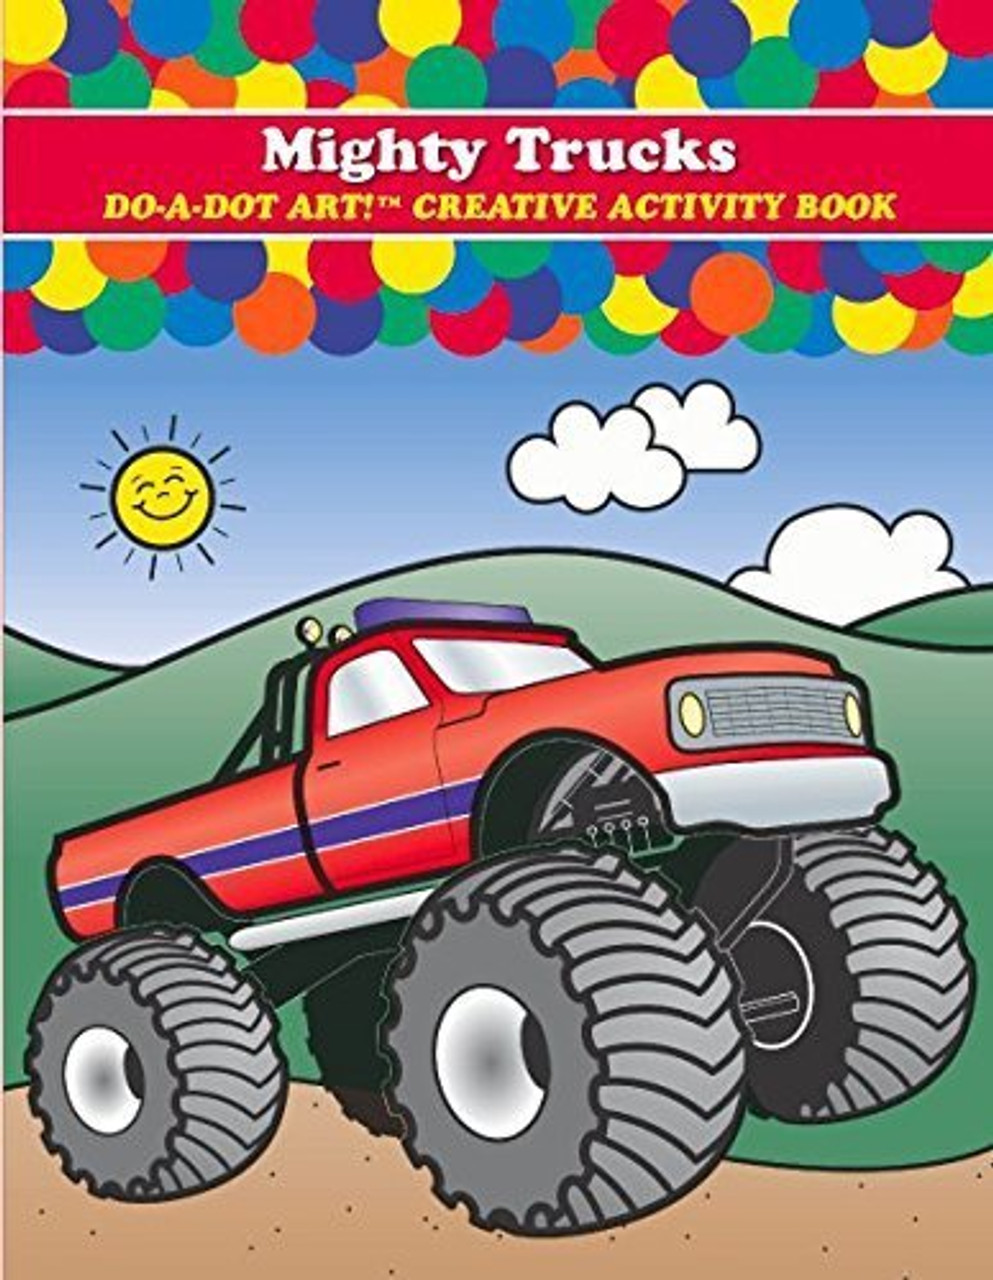 MIGHTY TRUCKS